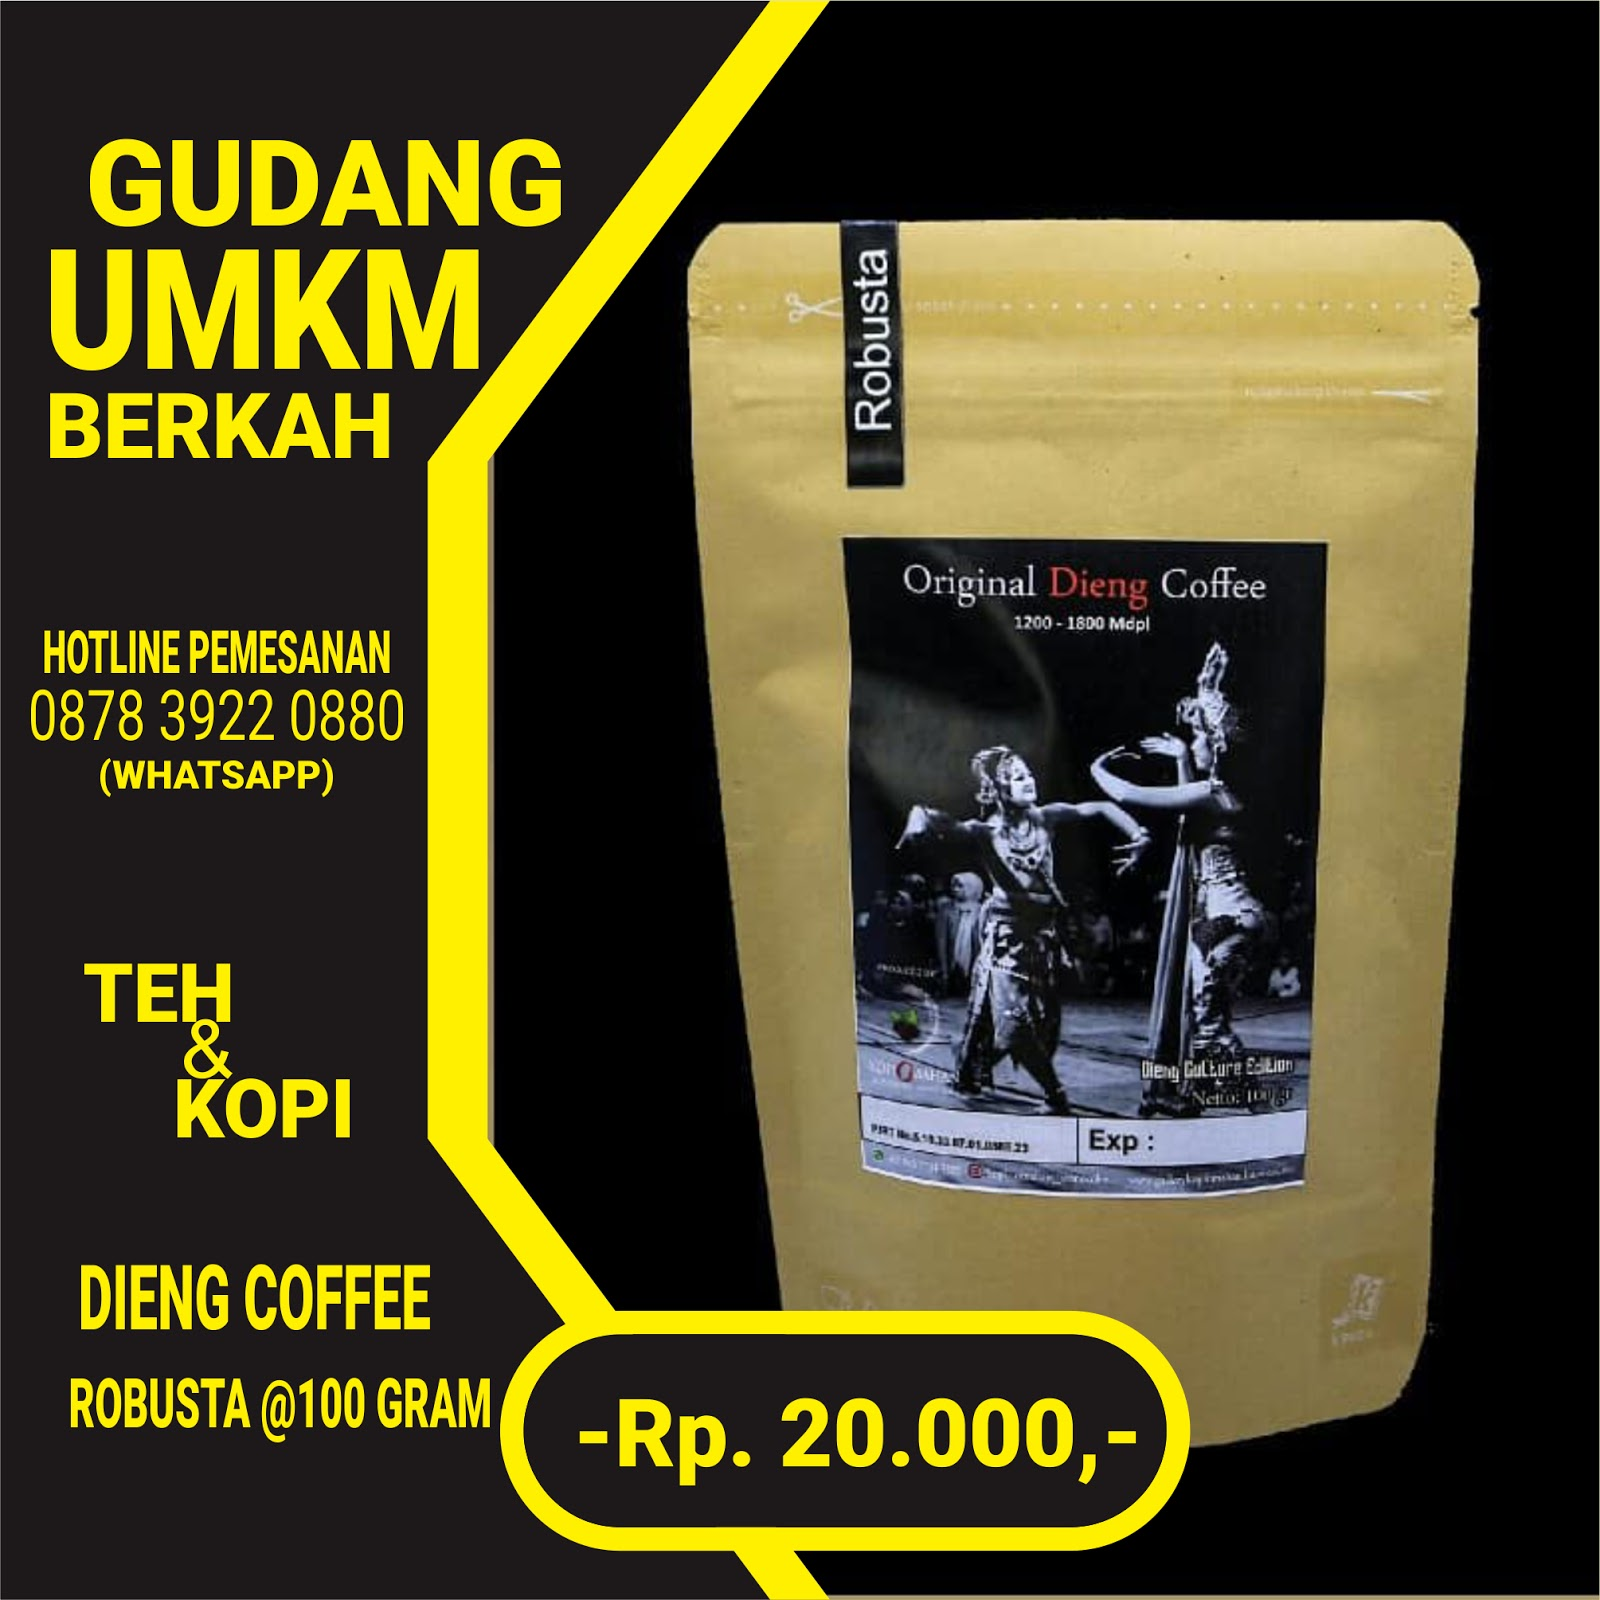 Original Dieng Coffe Robusta 100 Gram